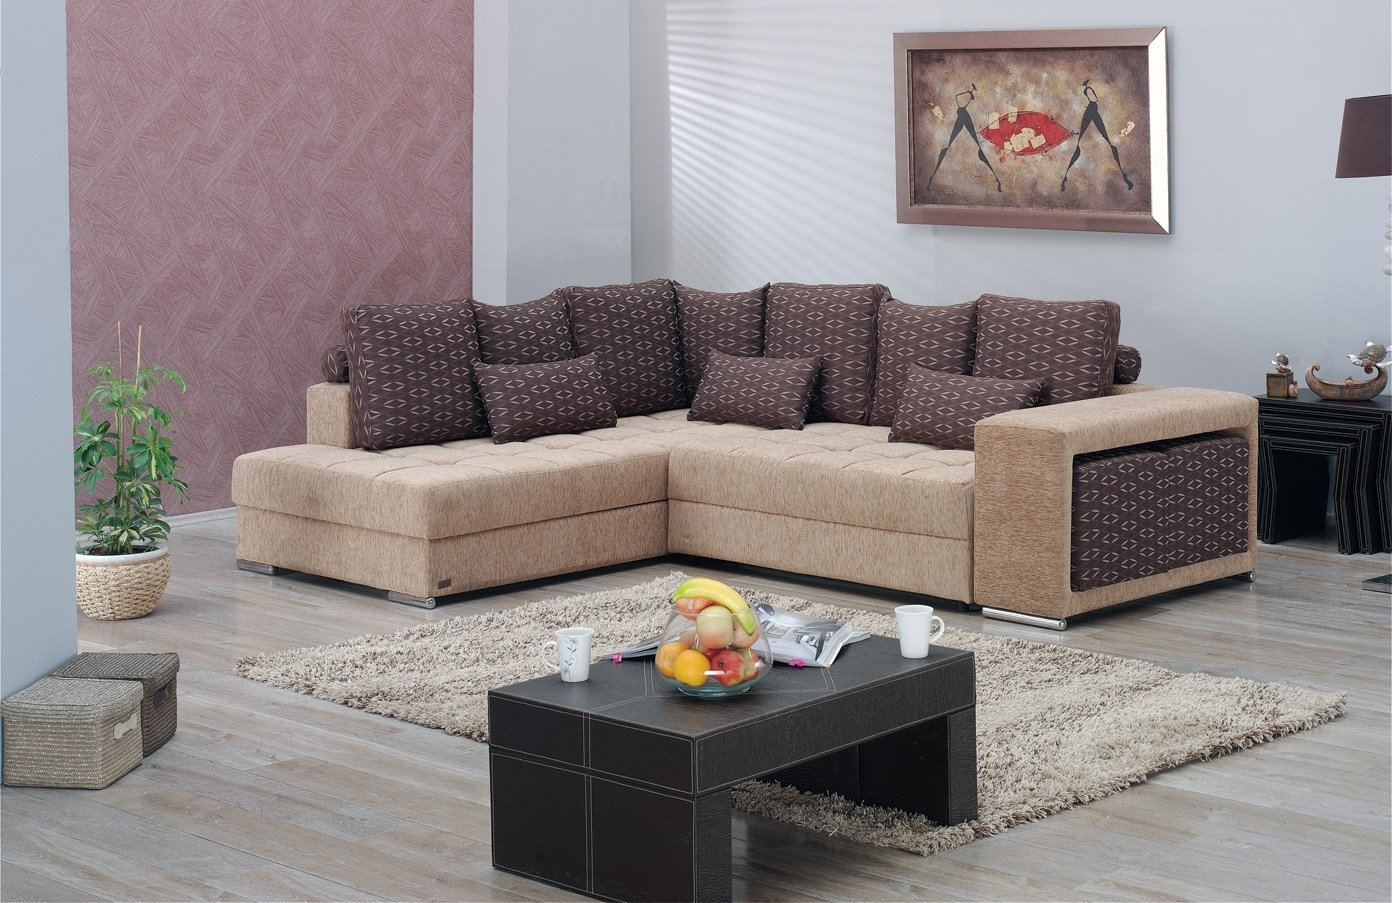 High Quality Sectional Sofas Regarding Current Sectional Sofa Design: Elegant Sectional Sofa Los Angeles Best (View 6 of 20)